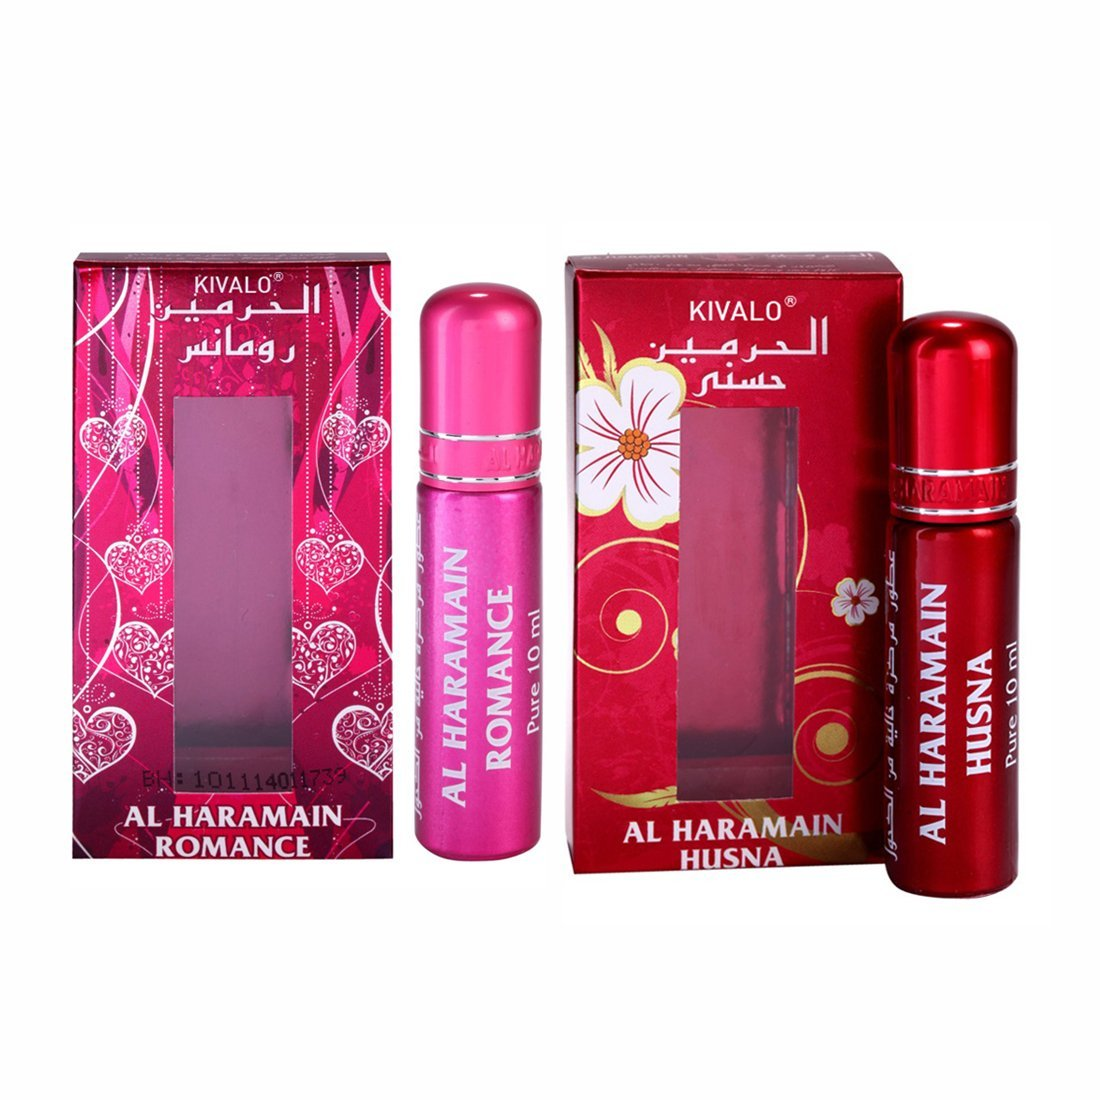 Al Haramain Romance & Husna Roll On Attar 10 ml Pack of 2